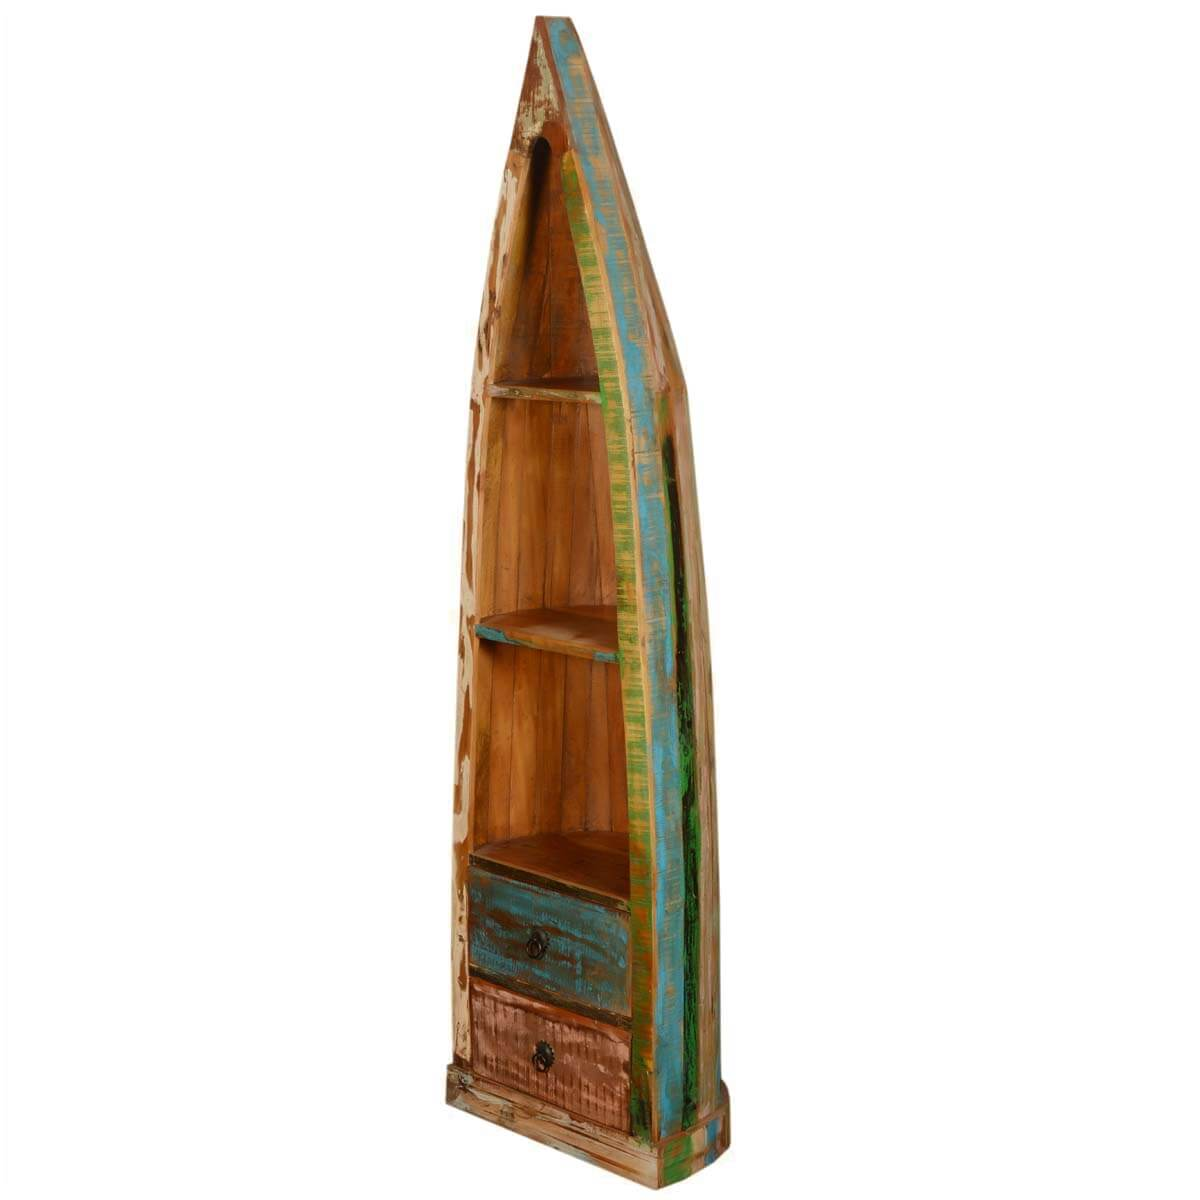 Mateer 3 Open Shelf Rustic Reclaimed Wood Canoe Bookcase With Drawers